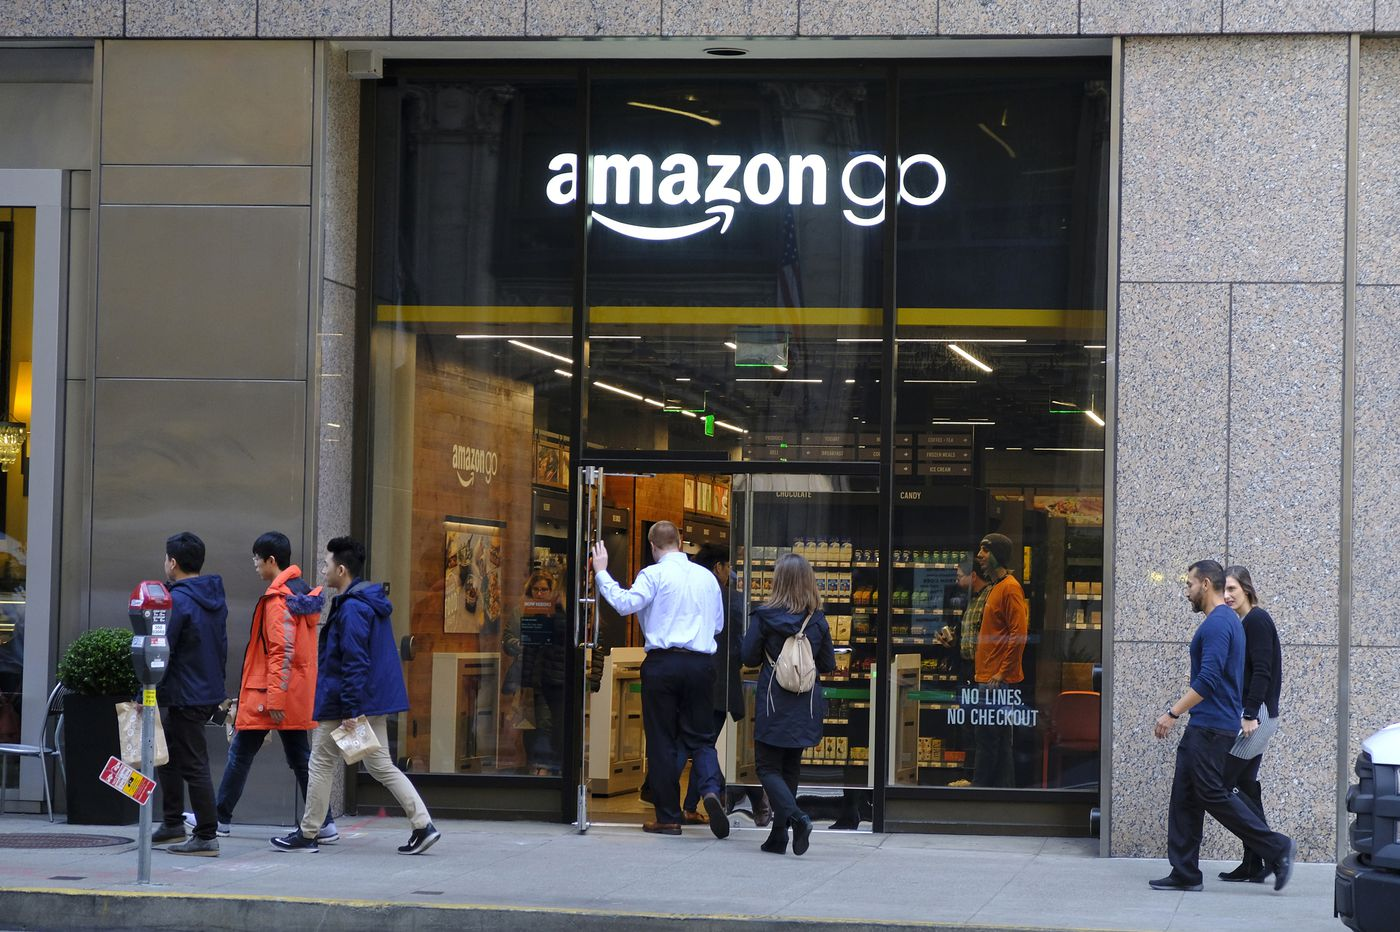 Amazon Go Stores To Accept Cash After Philly New Jersey Ban